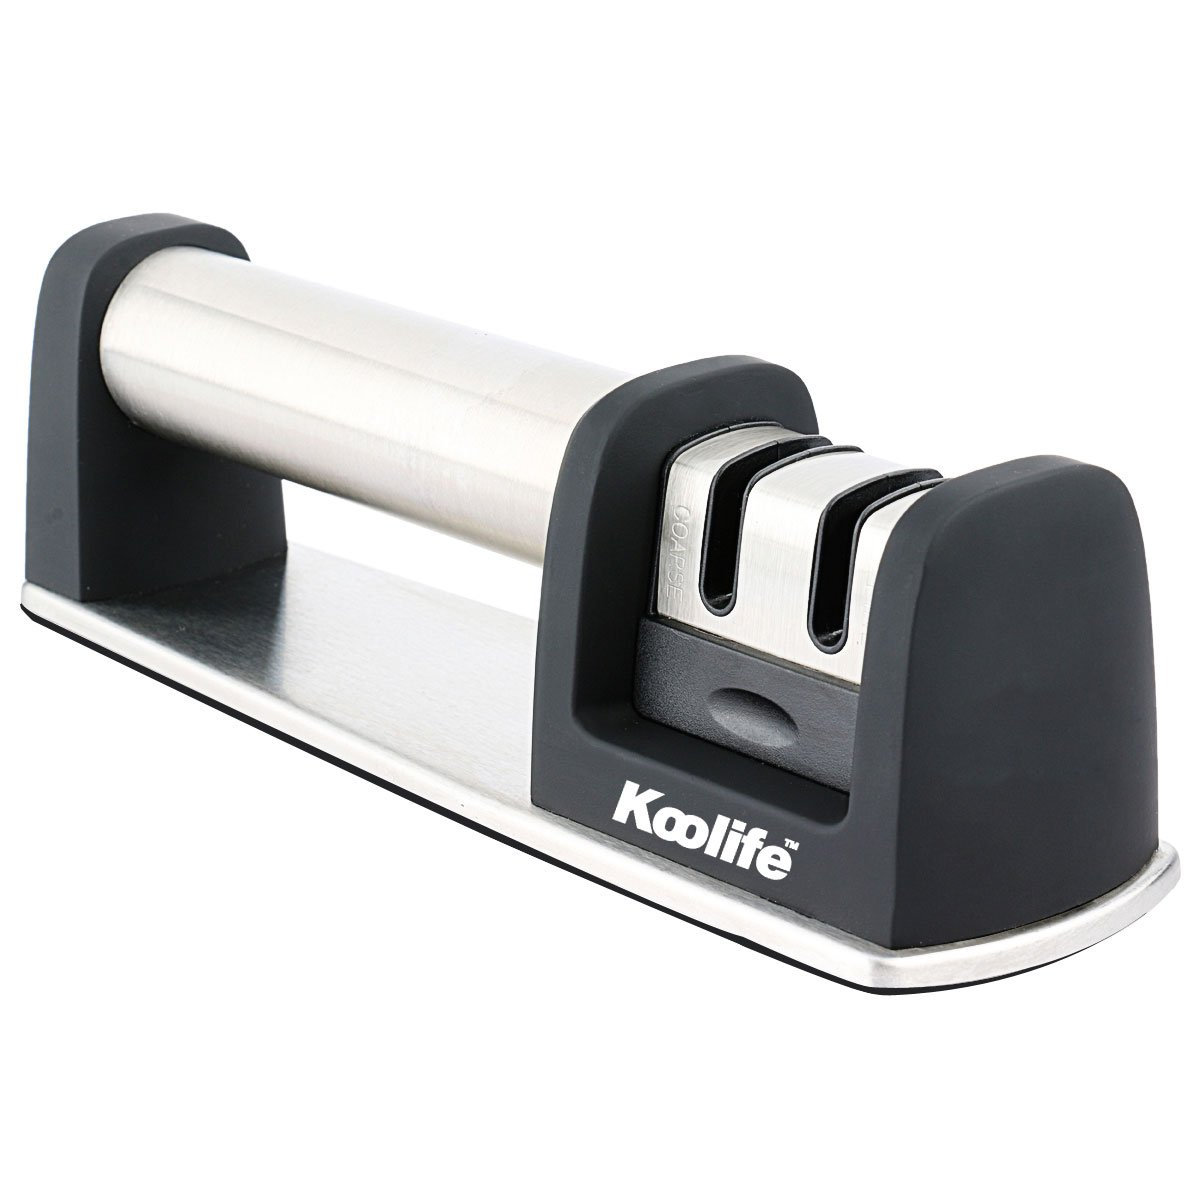 Koolife Knife Sharpener with 2 Stage Coarse & Extra-Fine Sharpening System for Steel Knives in All Sizes,Black